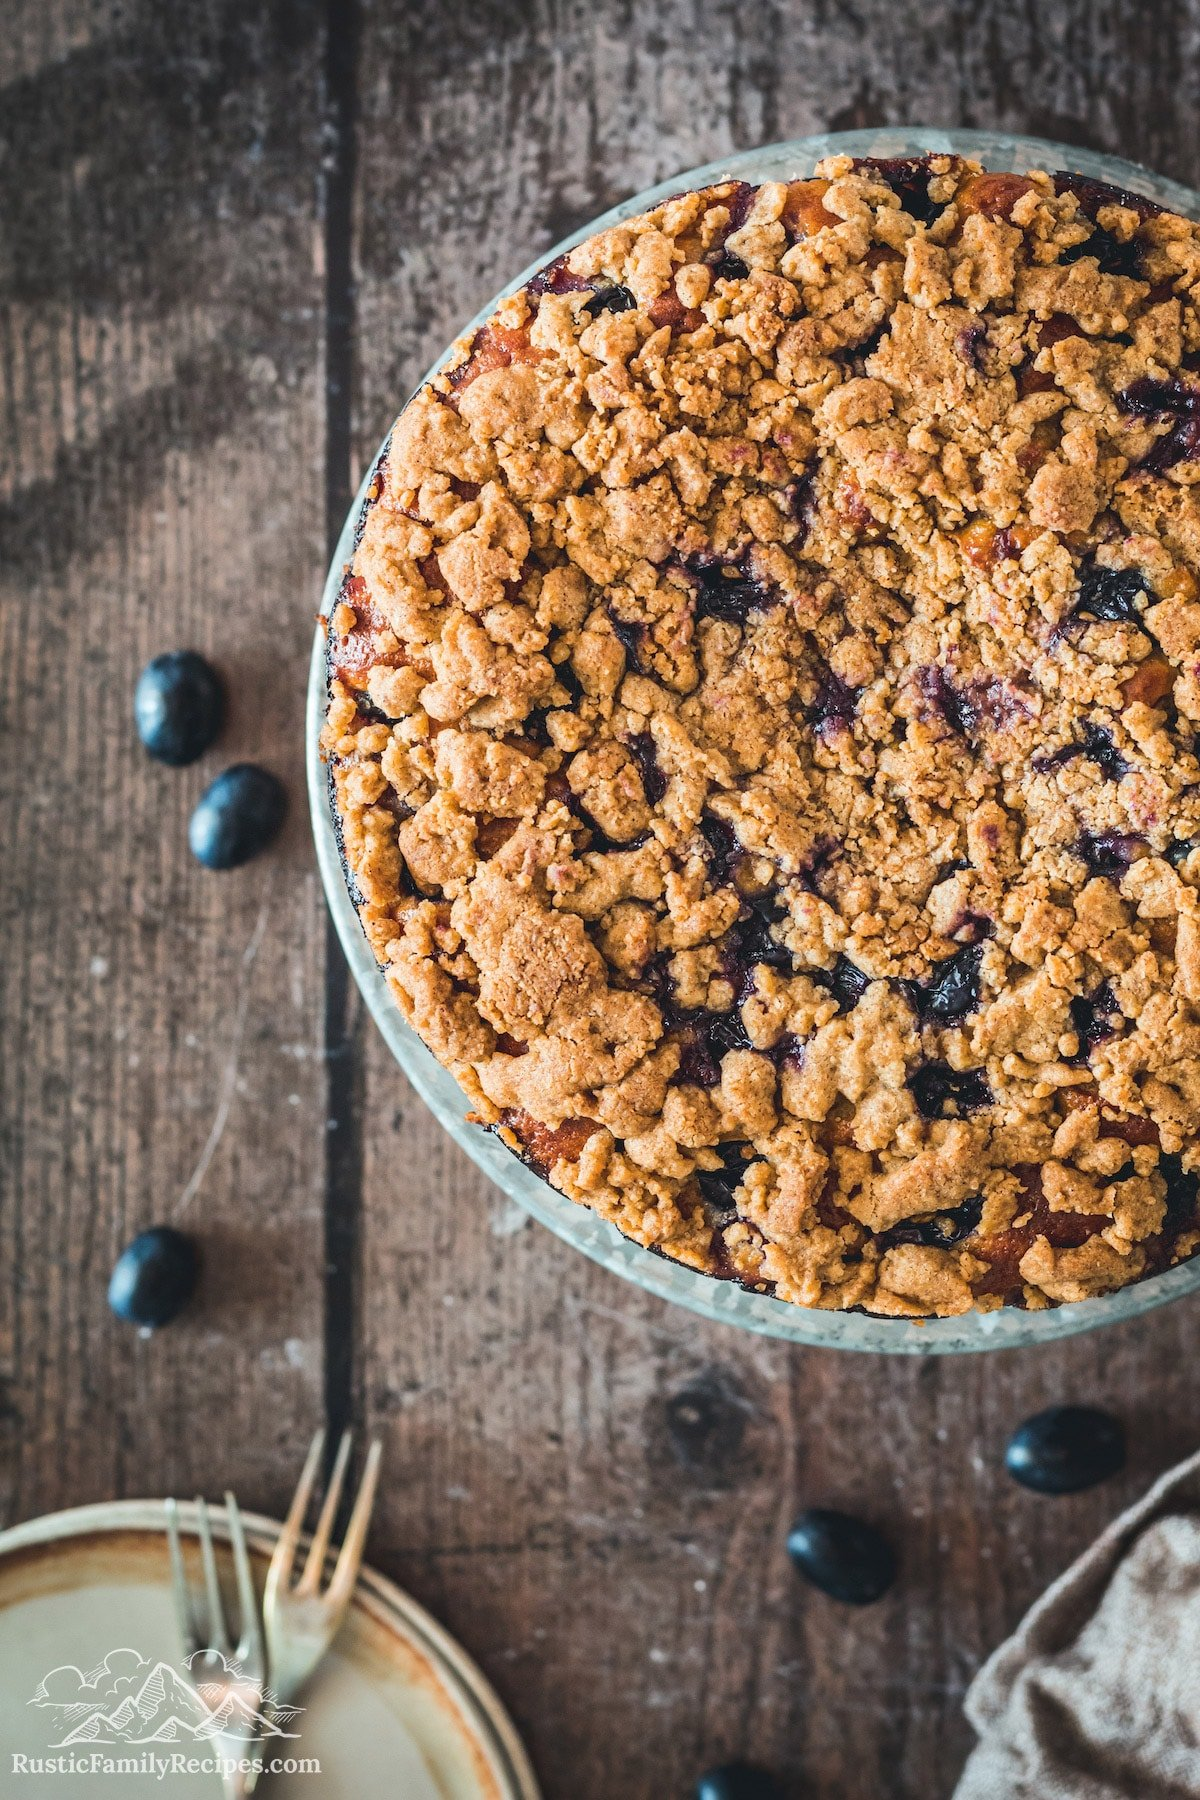 Top view of a black currant cake with streusel topping